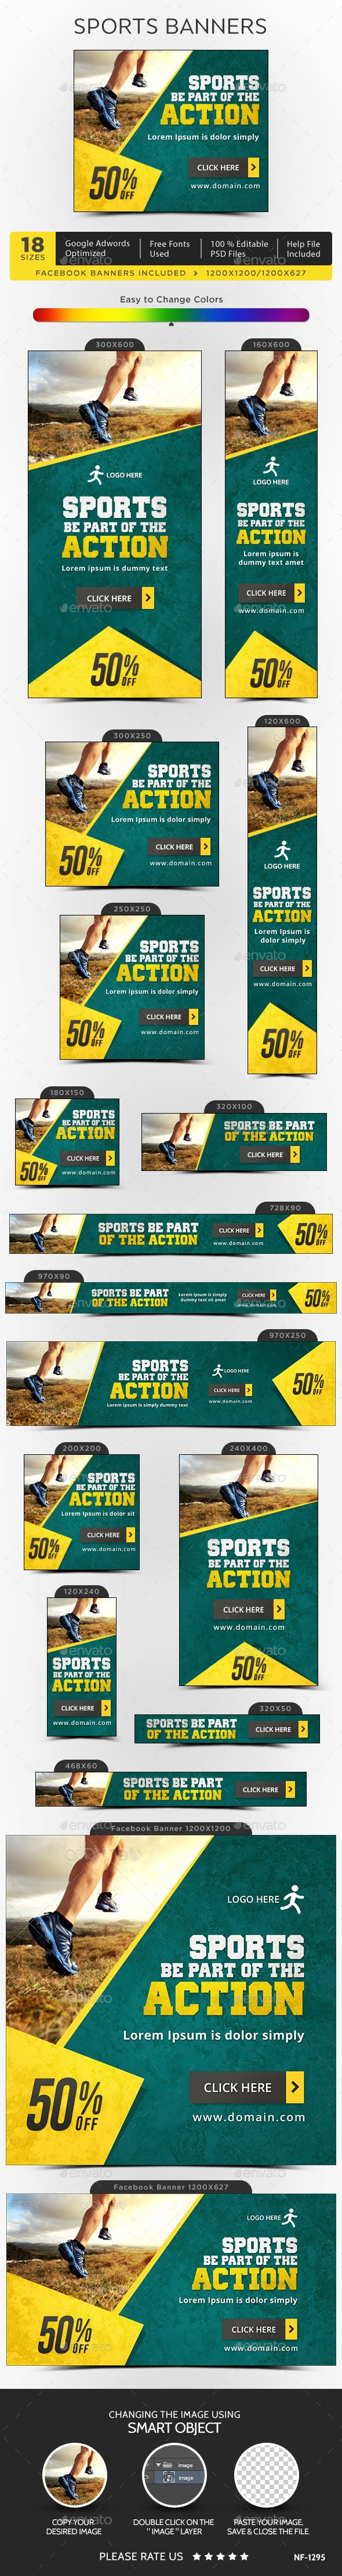 Sports Web Banners Template PSD. Download here: http://graphicriver.net/item/sports-banners/16161794?ref=ksioks